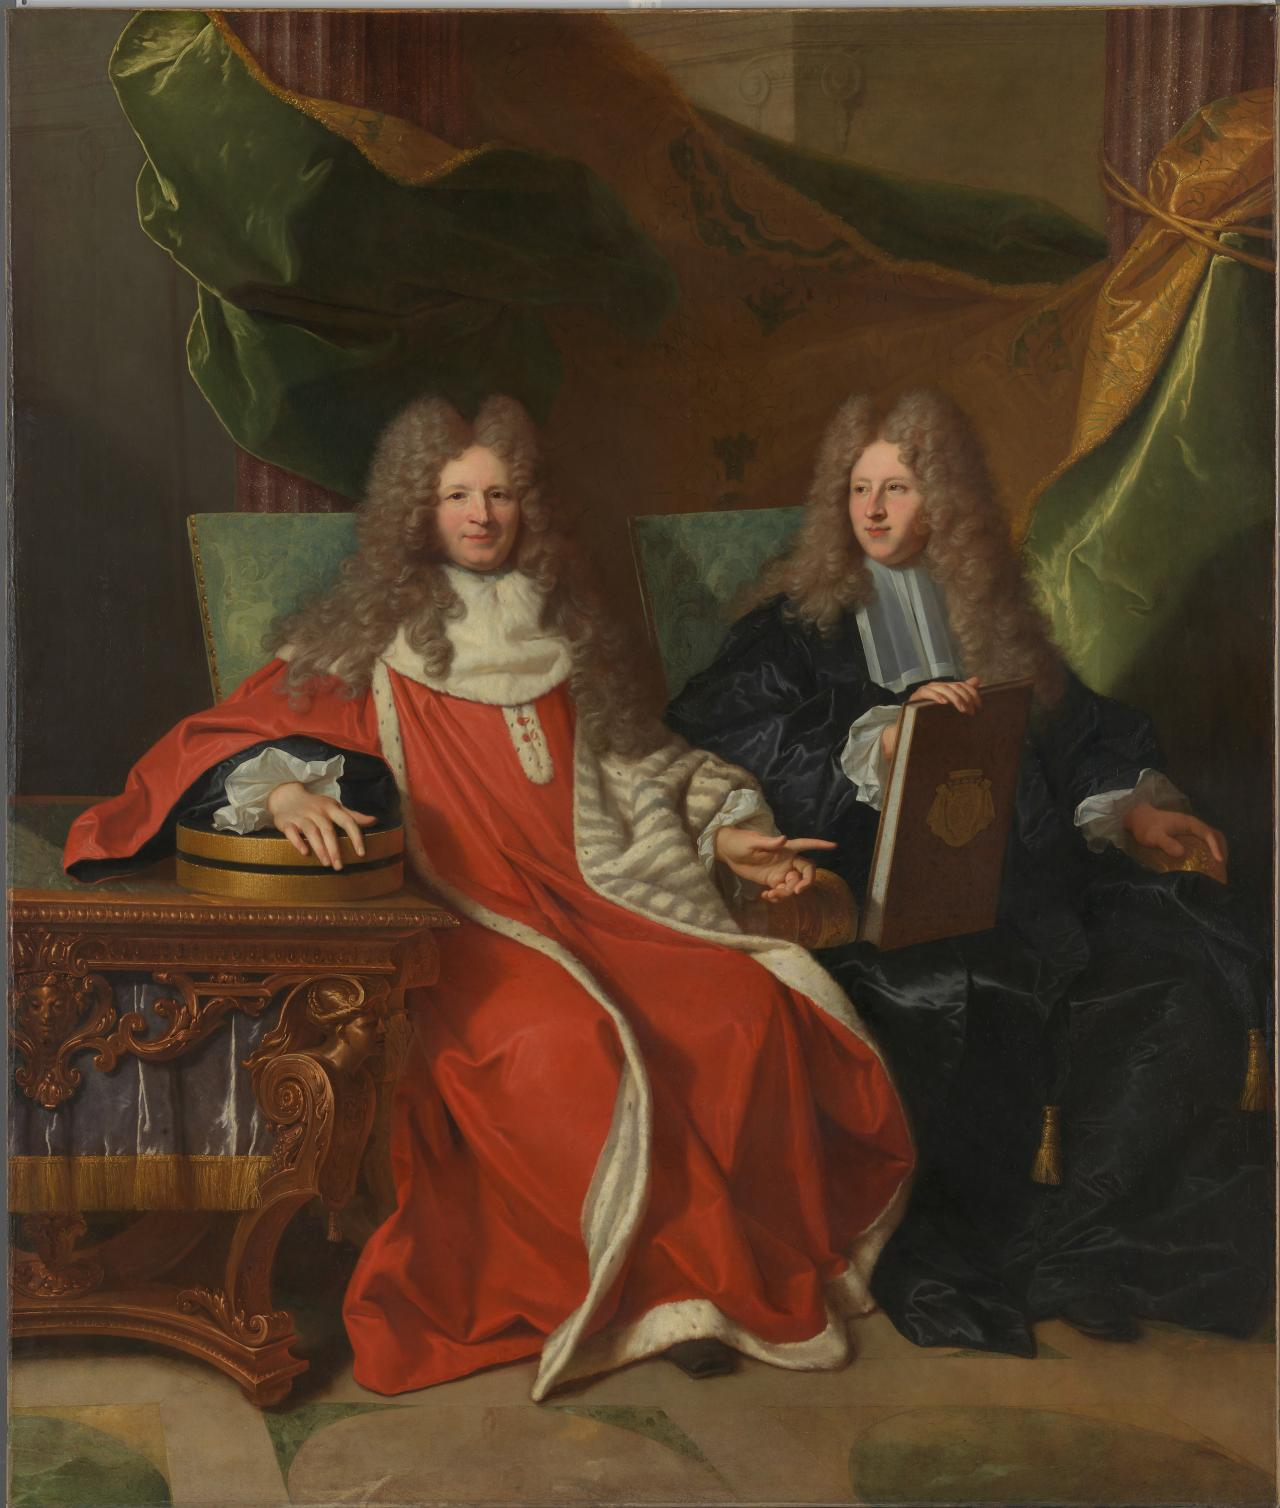 Monsieur Le Bret and his son, Cardin Le Bret